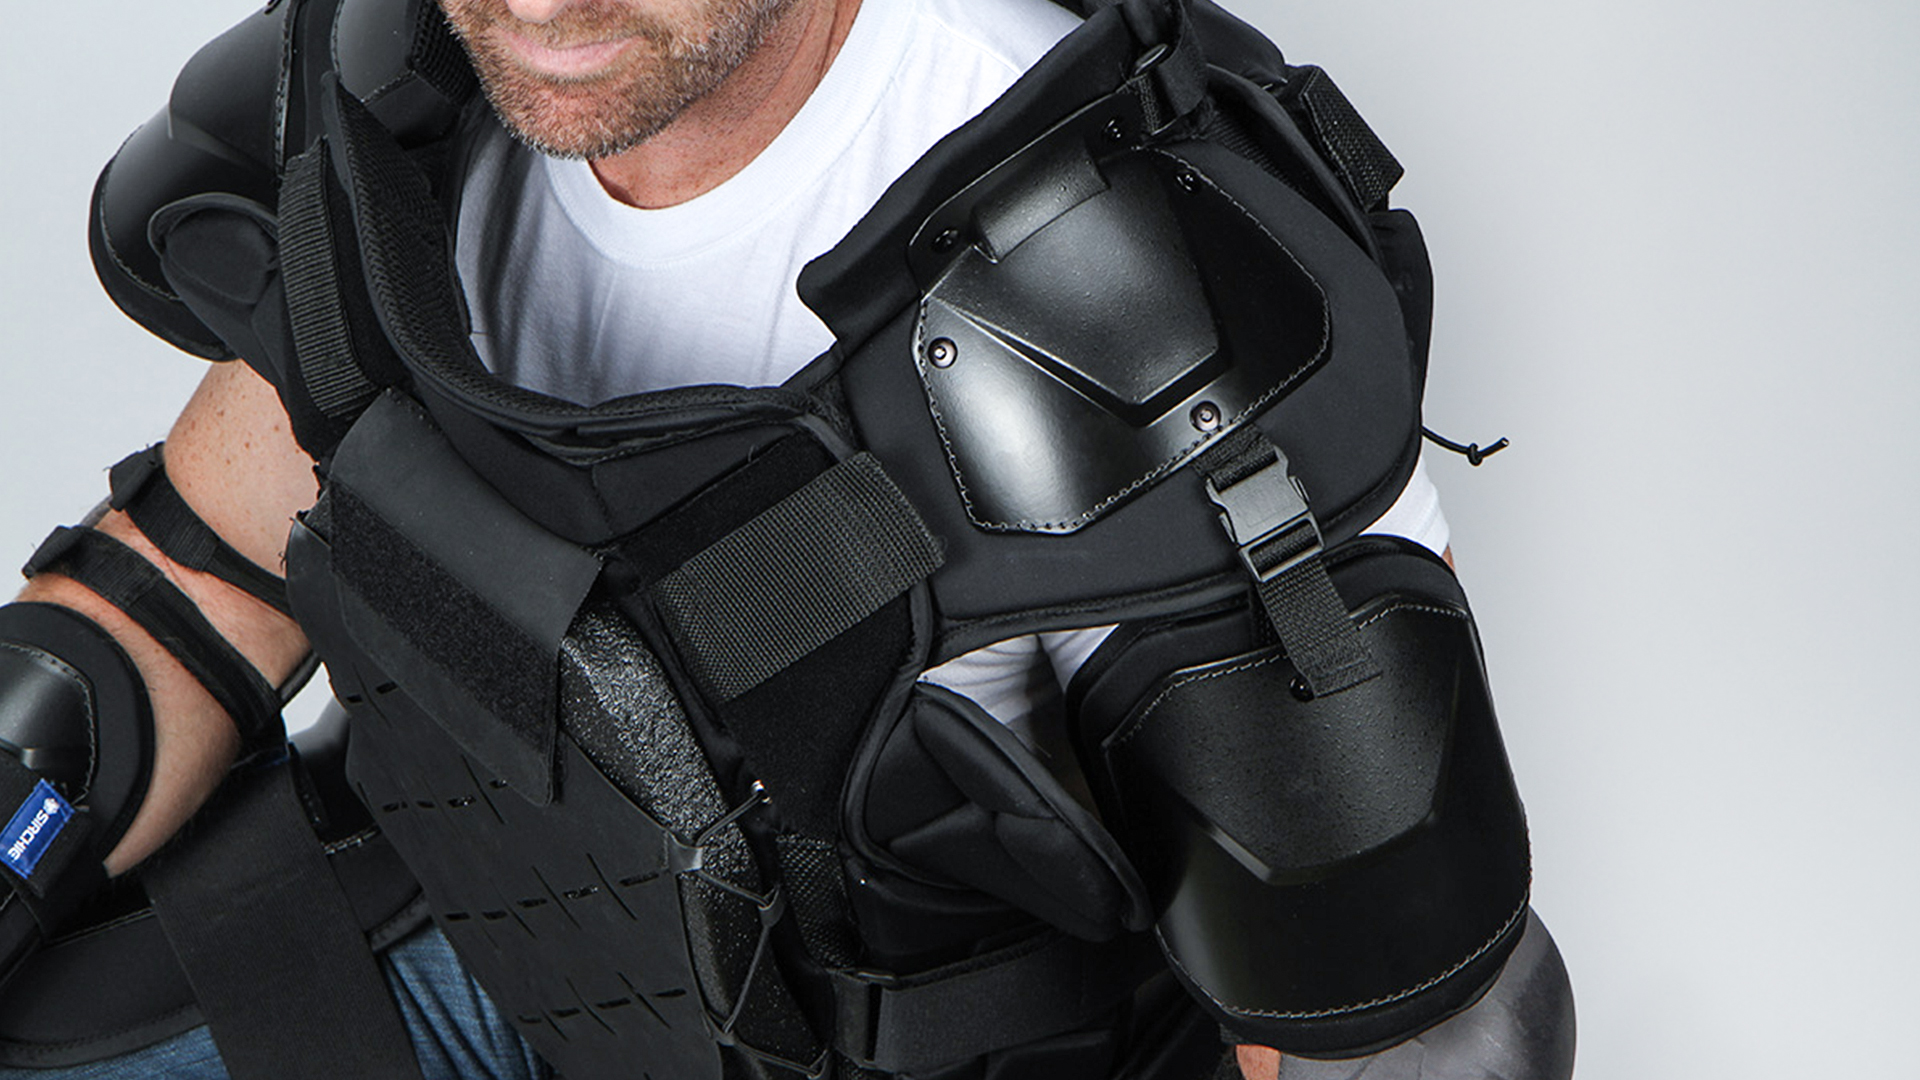 priority_designs_sirchie_tactical_gear_proof-of-concept_prototype